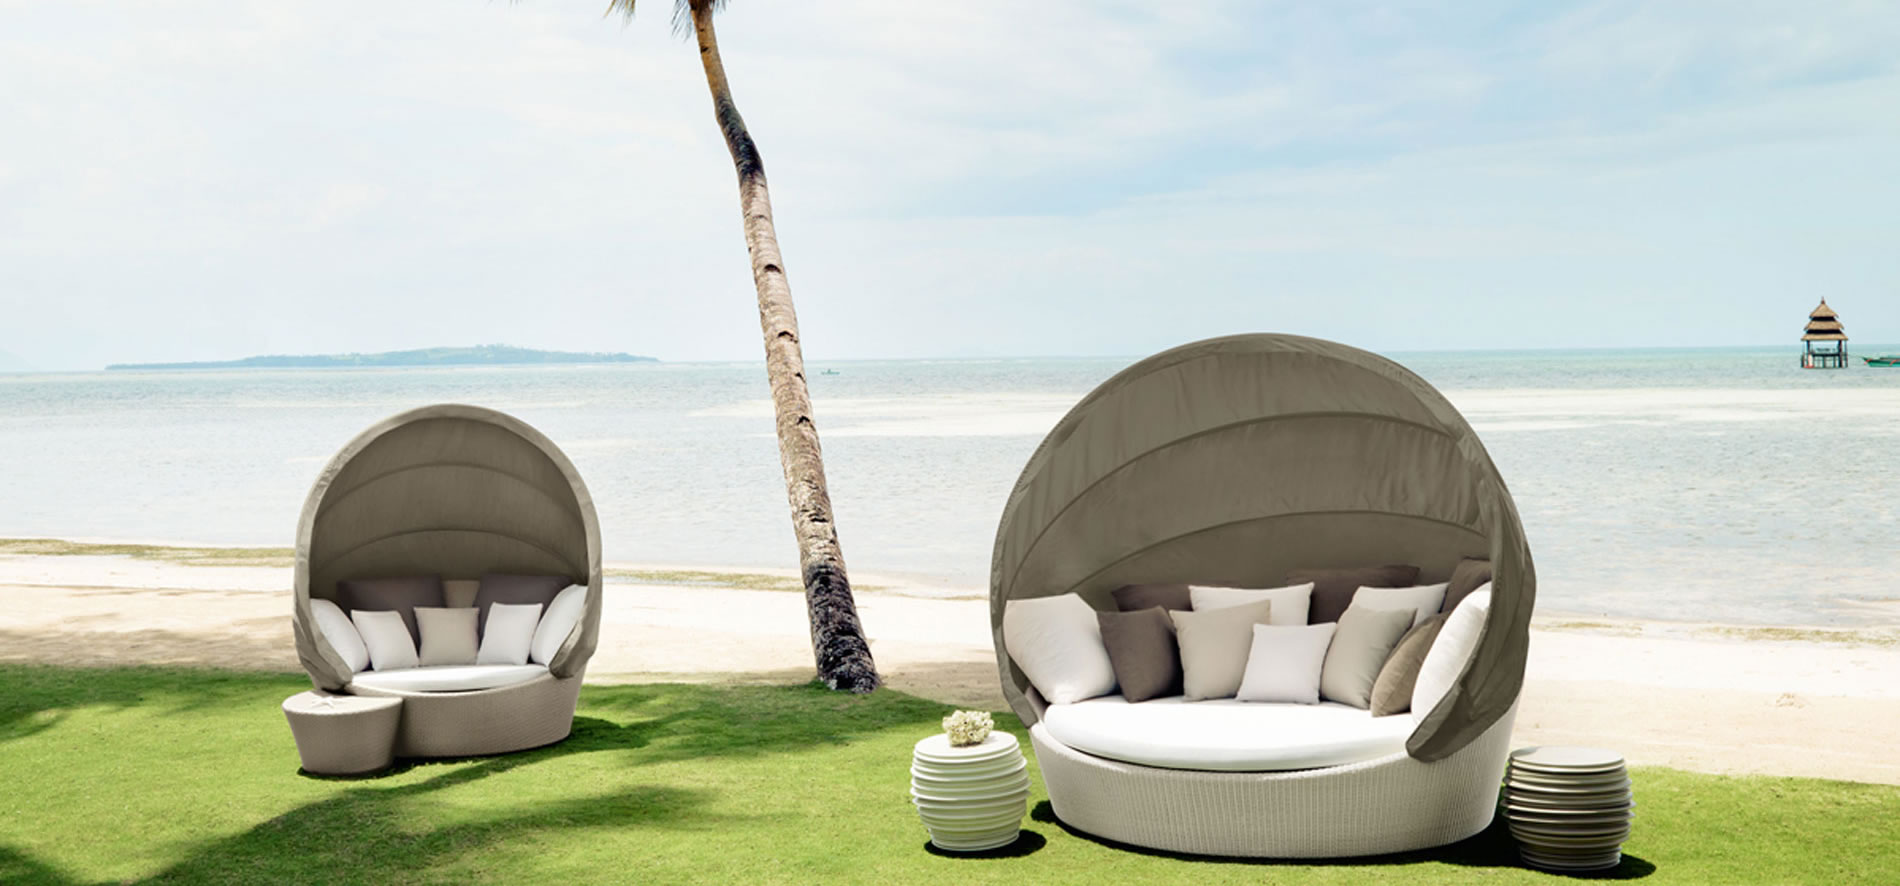 Dedon Sessel Orbit Dedon Outdoor Orbit Dedon Sofas Orbit Dedon Sessel